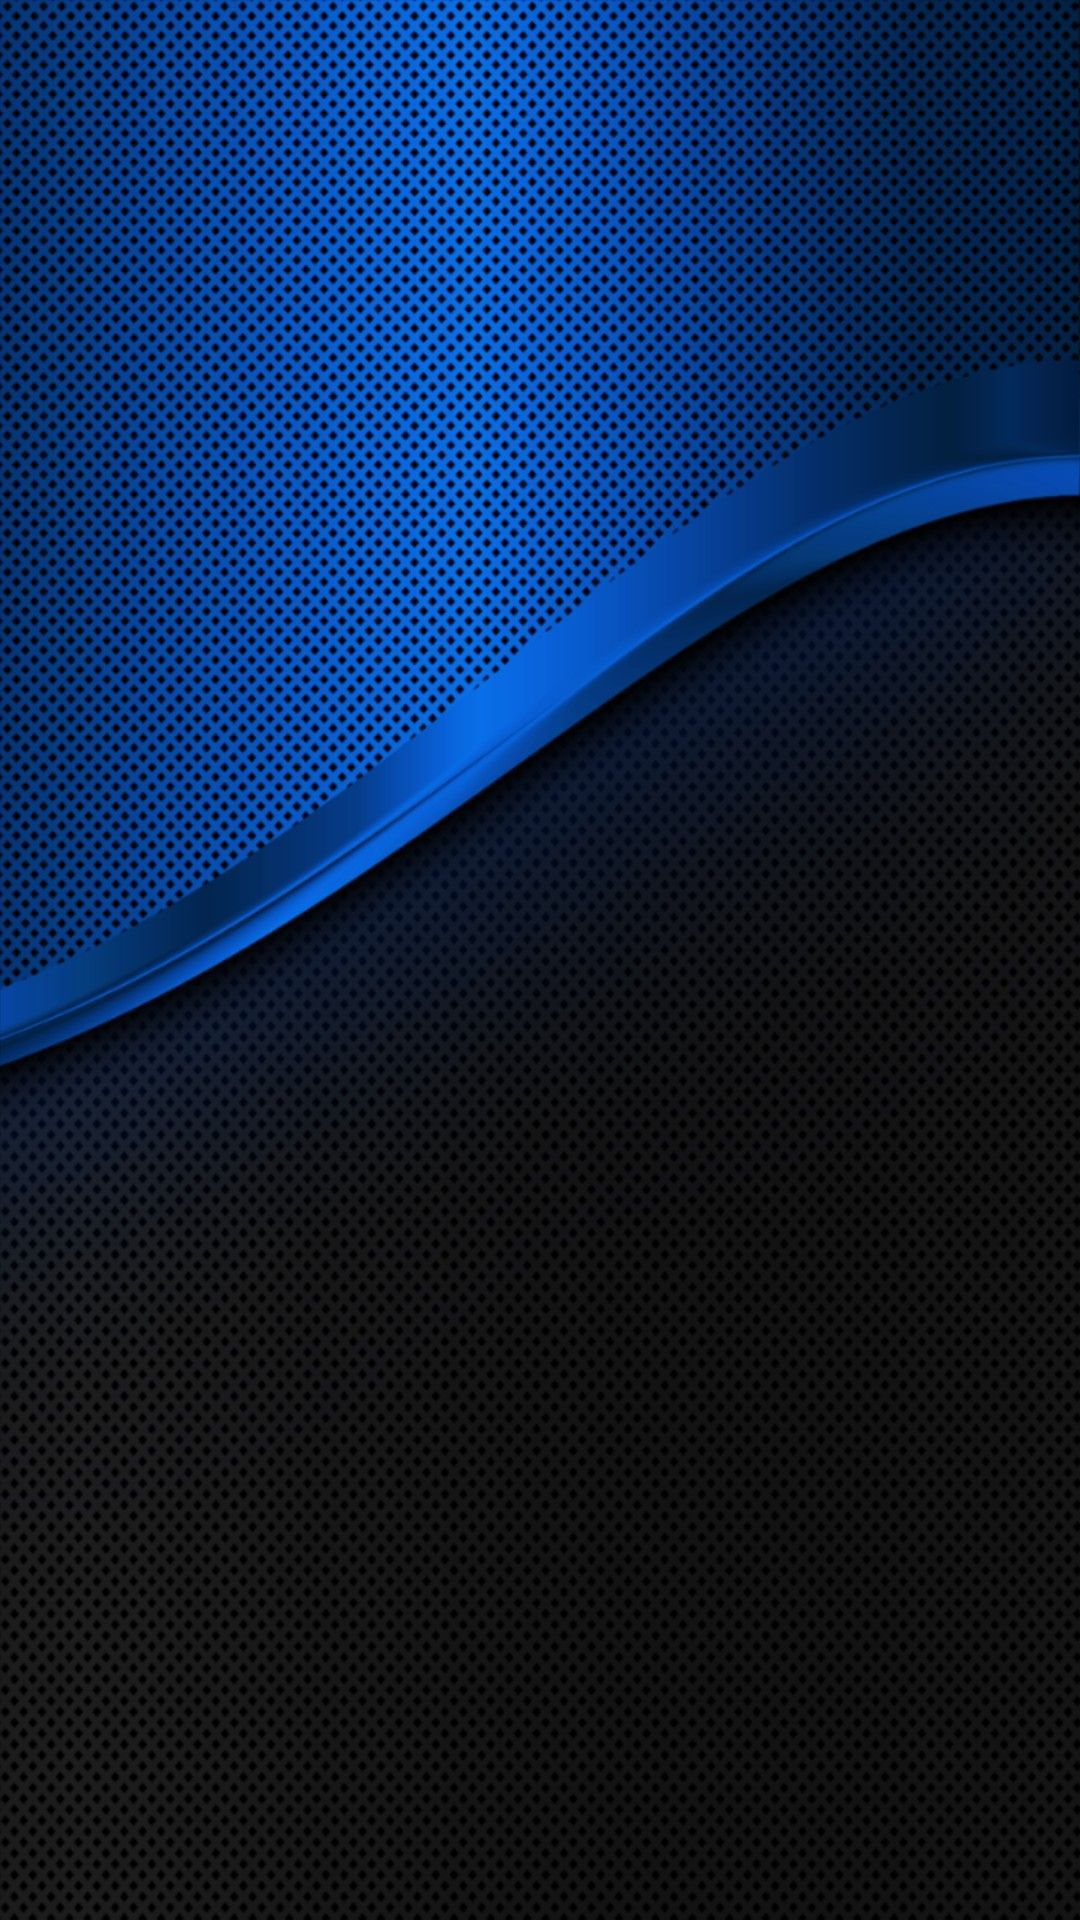 Blue Phone Wallpapers Top Free Blue Phone Backgrounds Wallpaperaccess